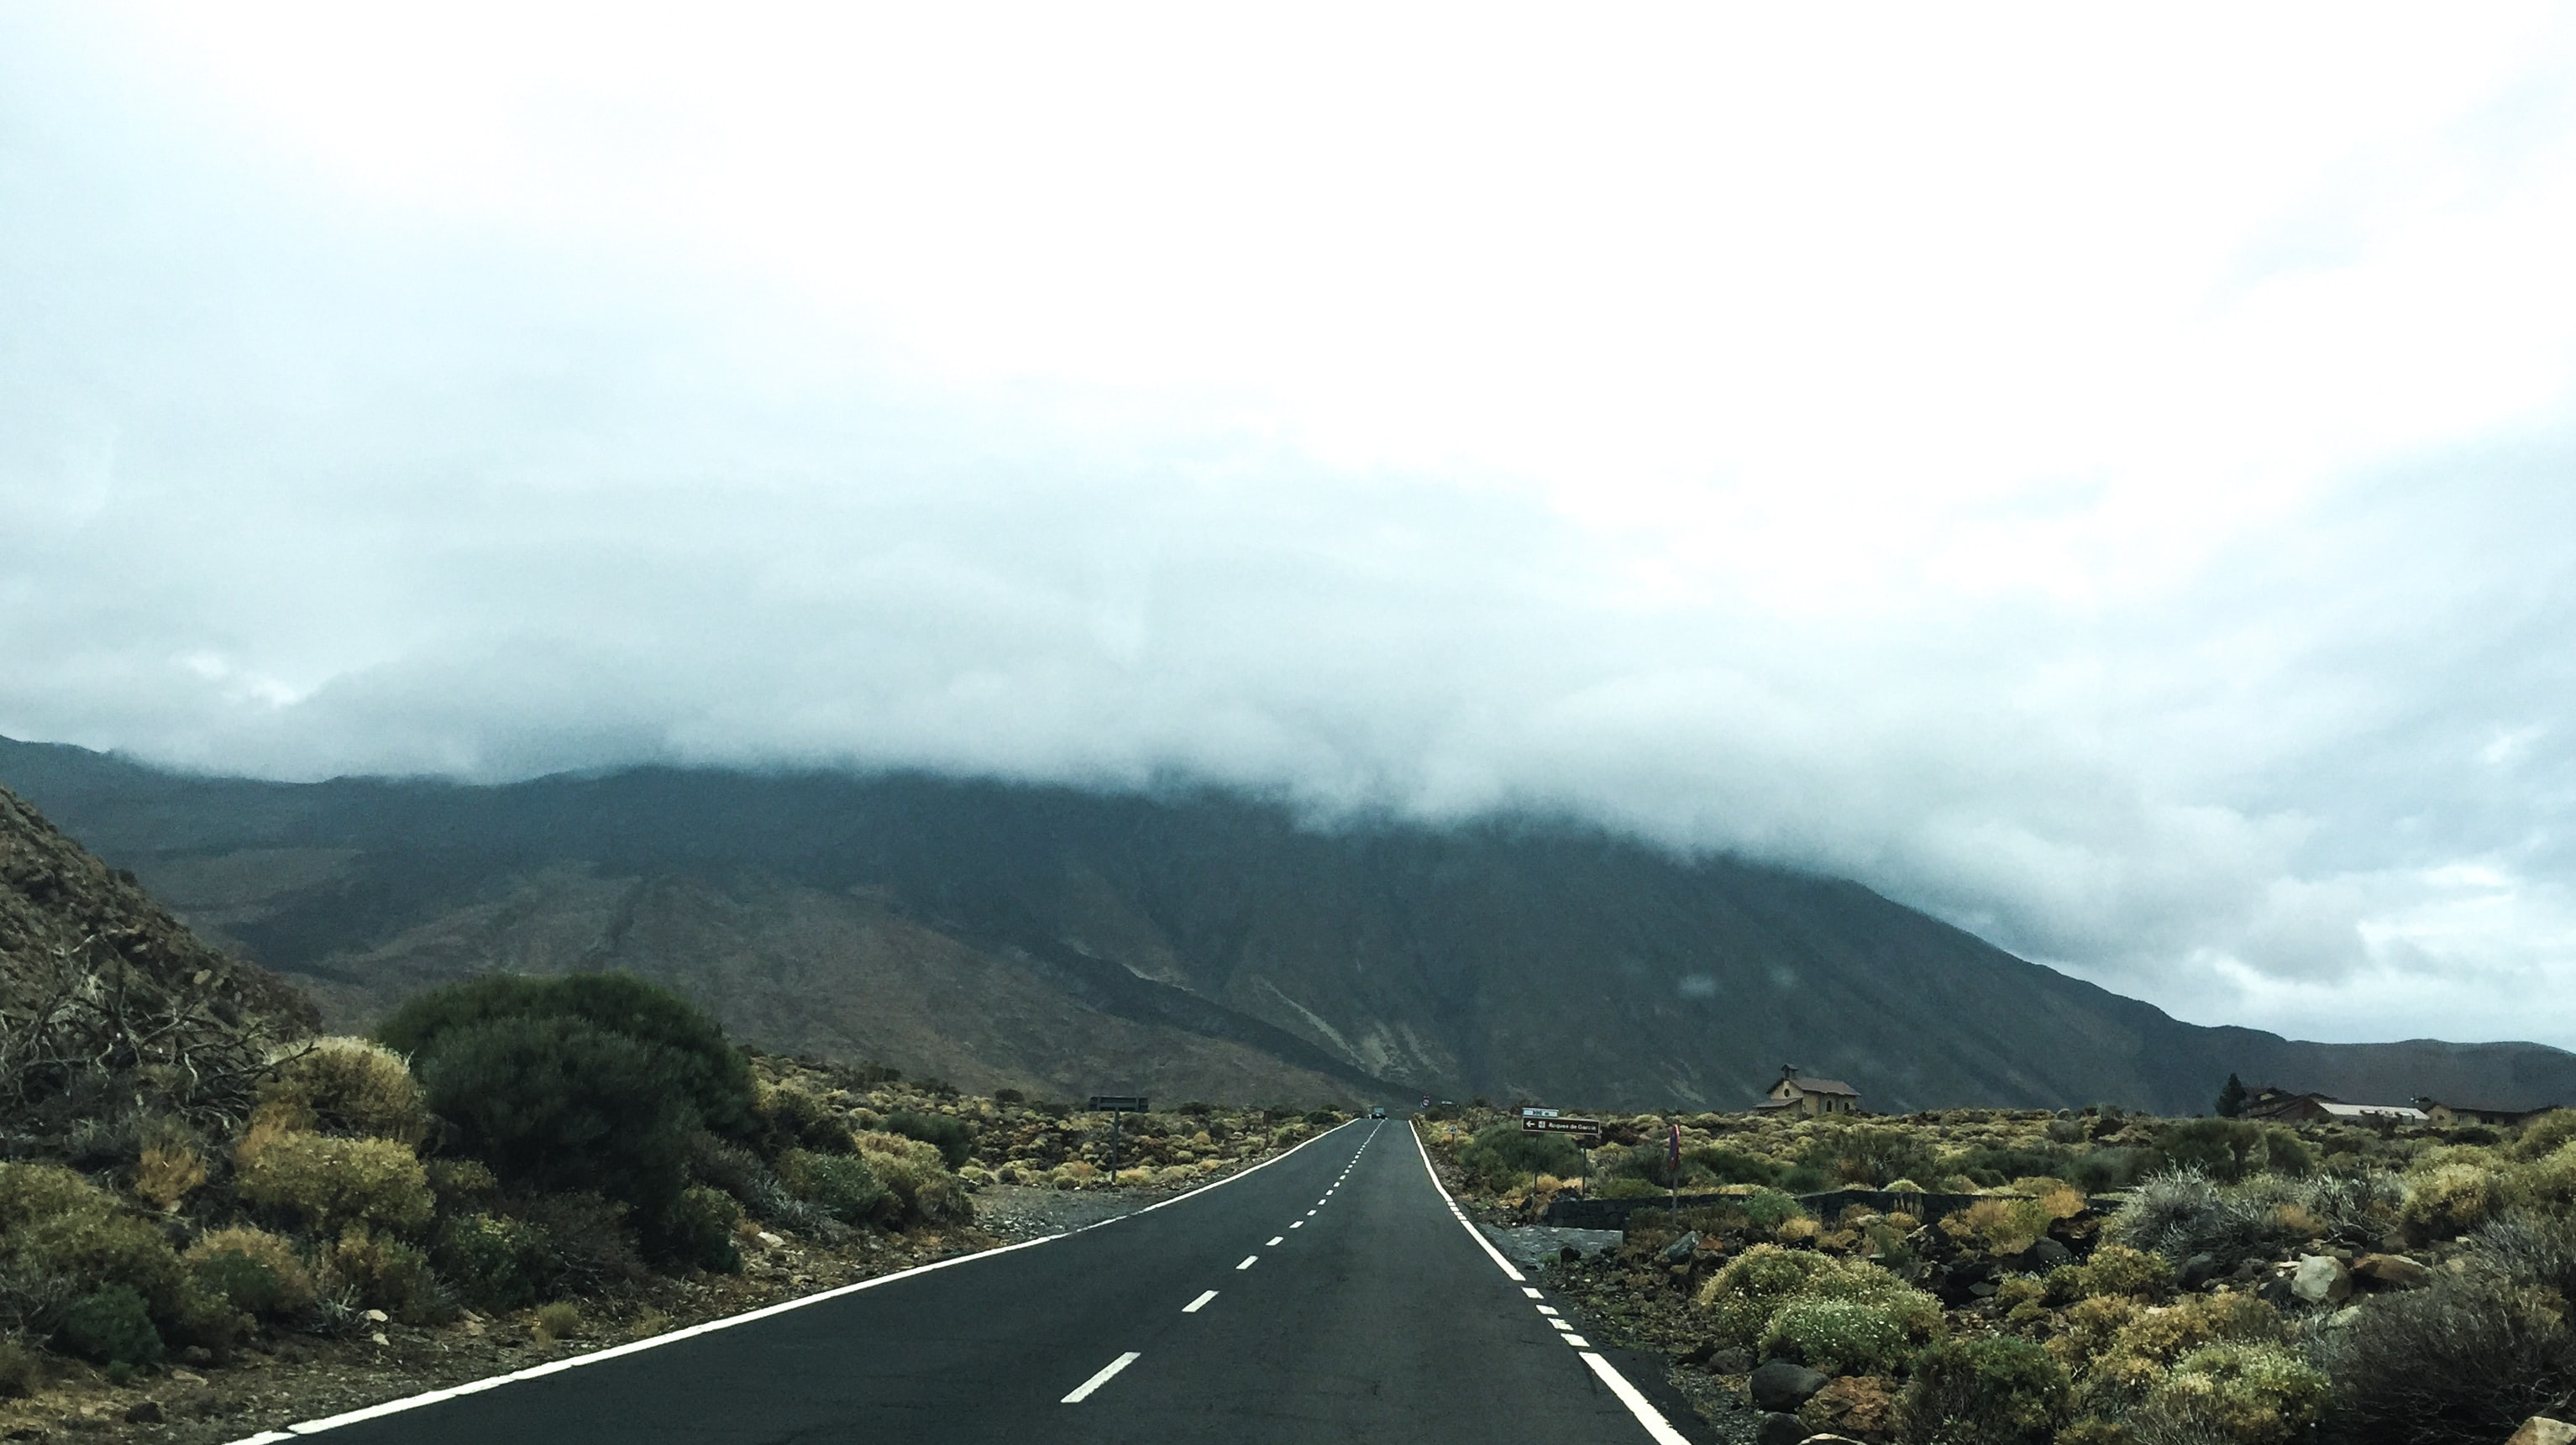 An empty road leading towards a mountain with mist rolling down its slopes